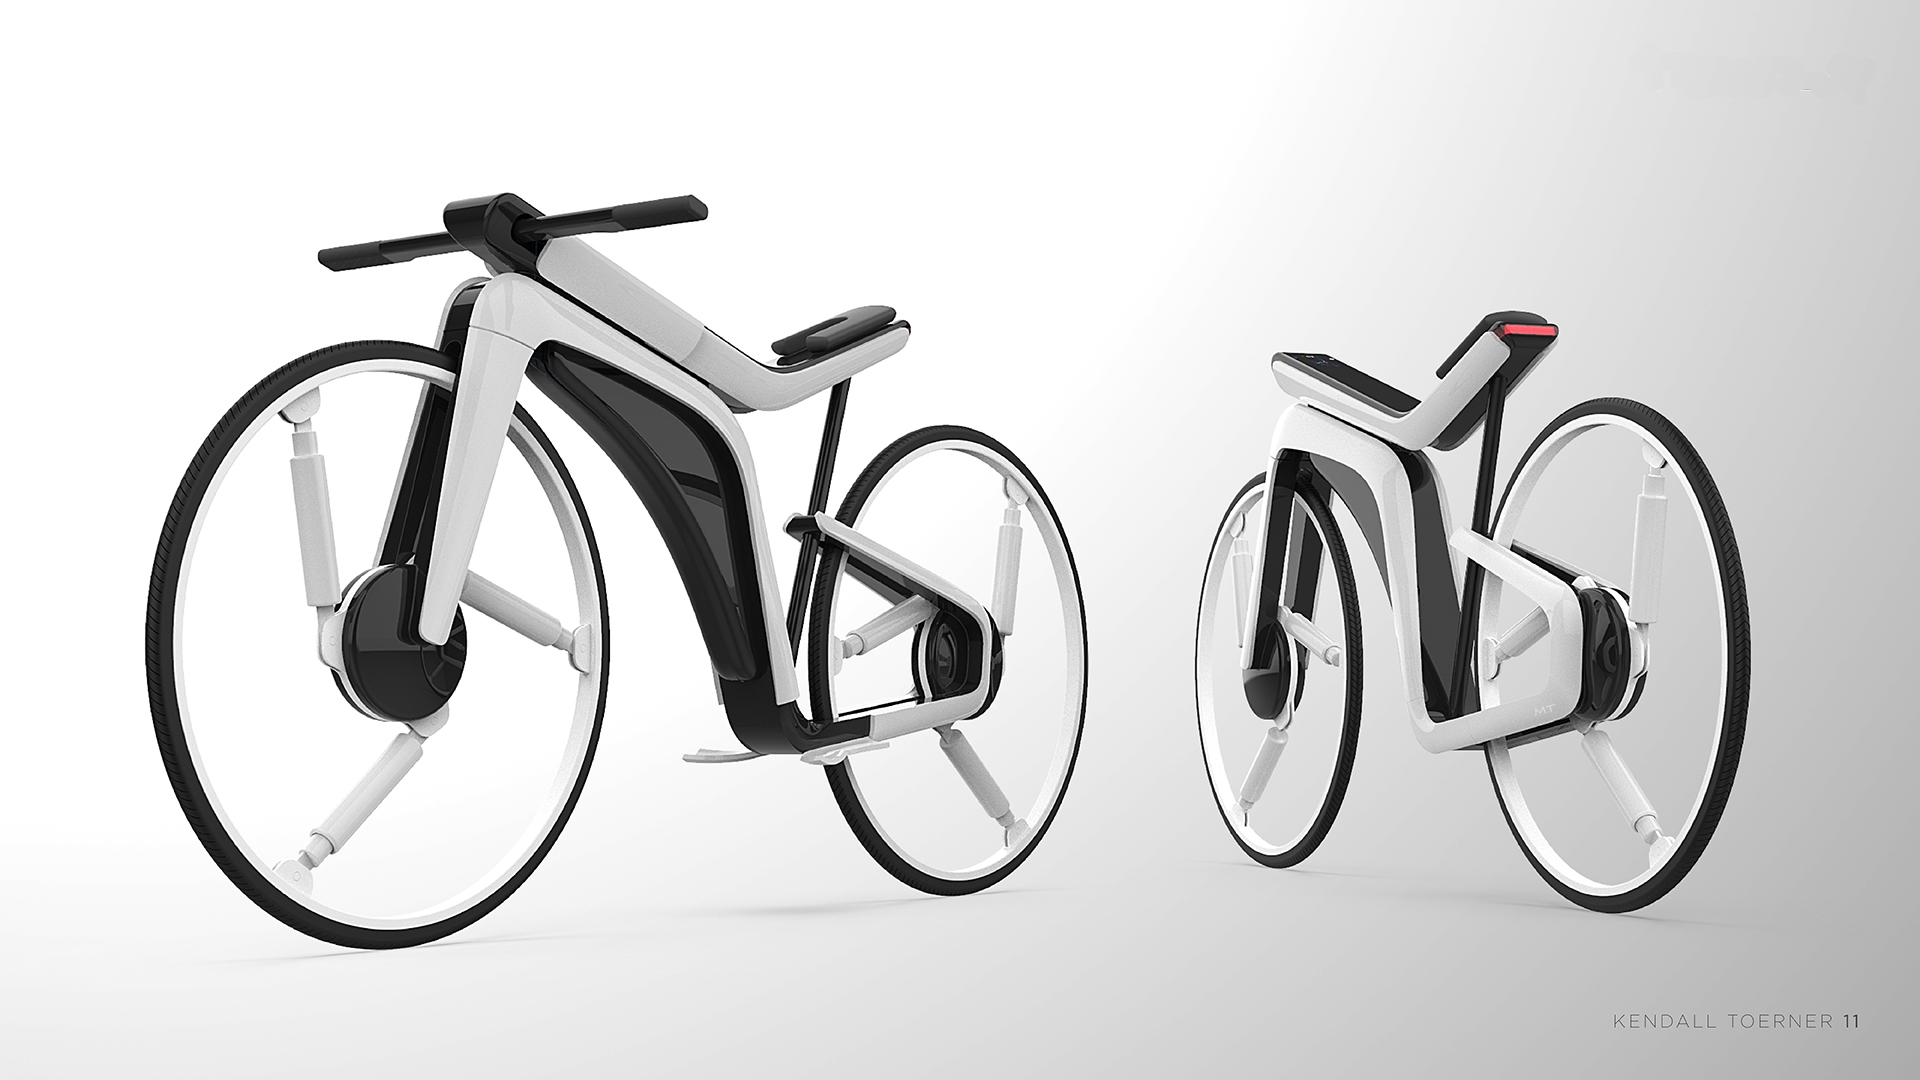 Elon Musk says a Tesla Electric Bicycle could be coming